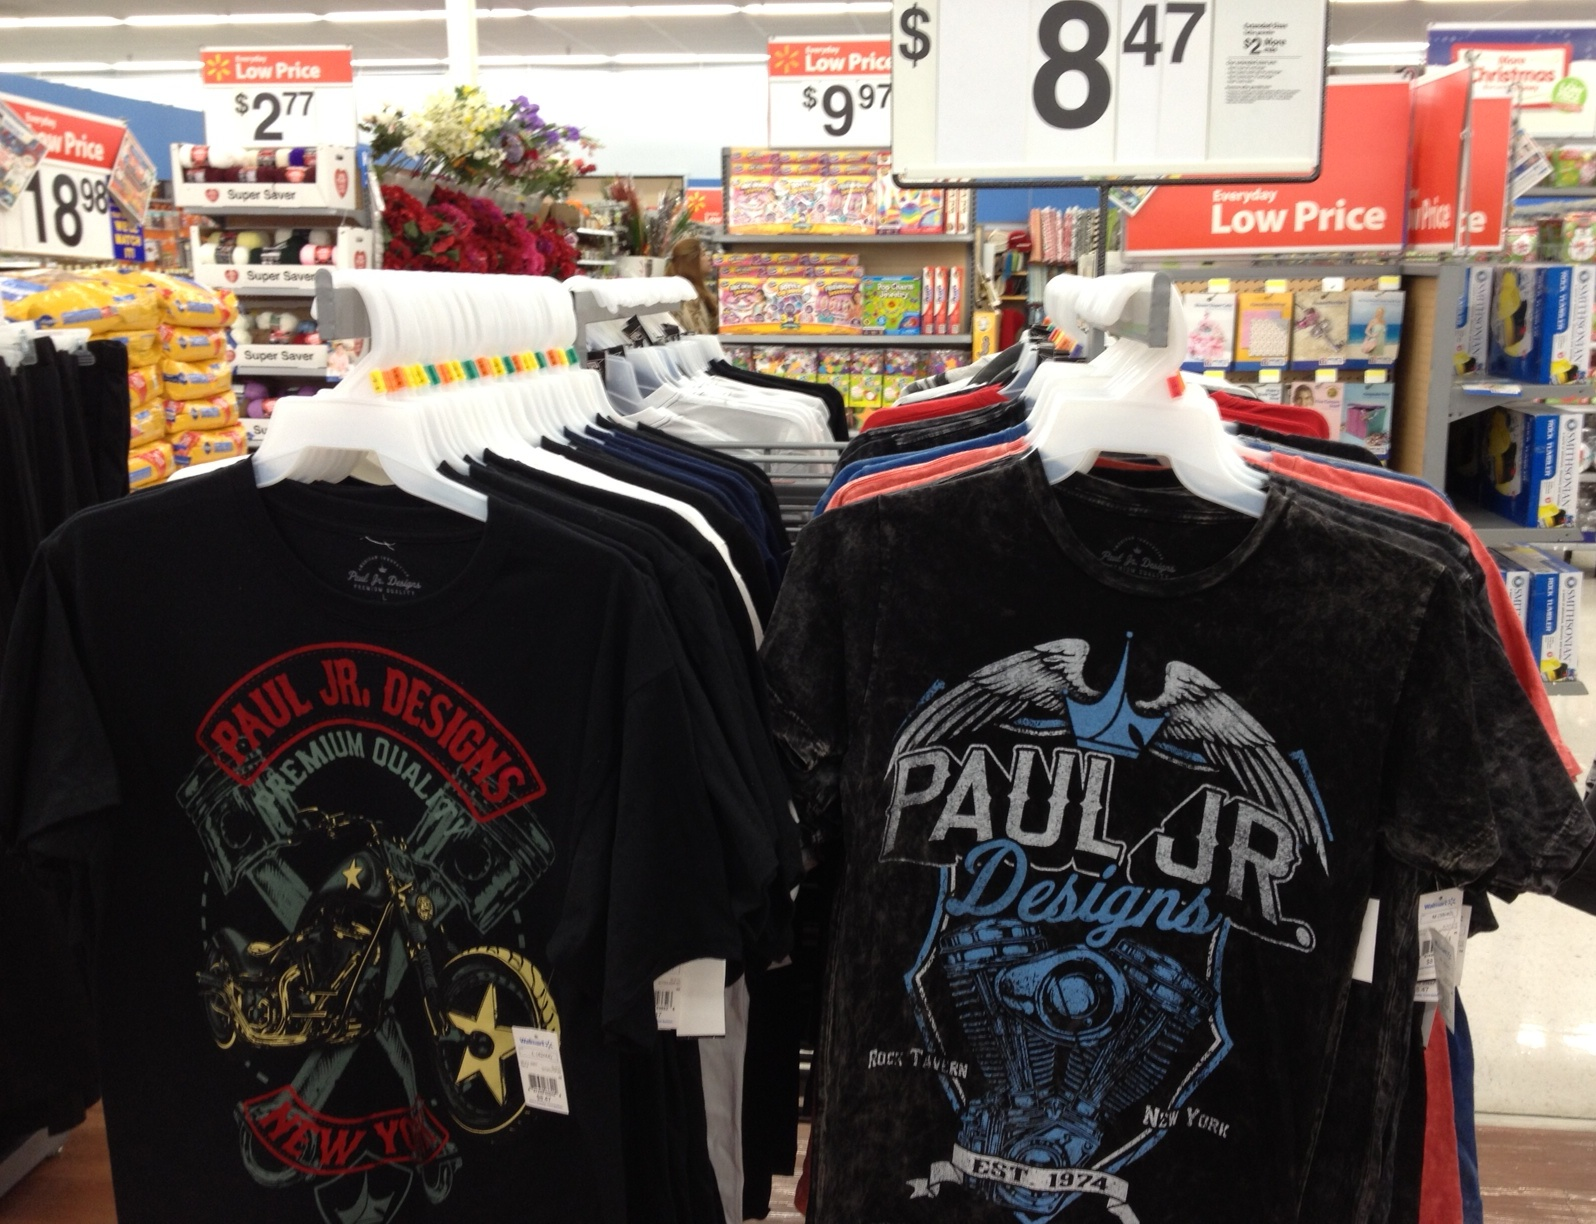 Paul Jr Designs Shirts Now at Walmart Stores